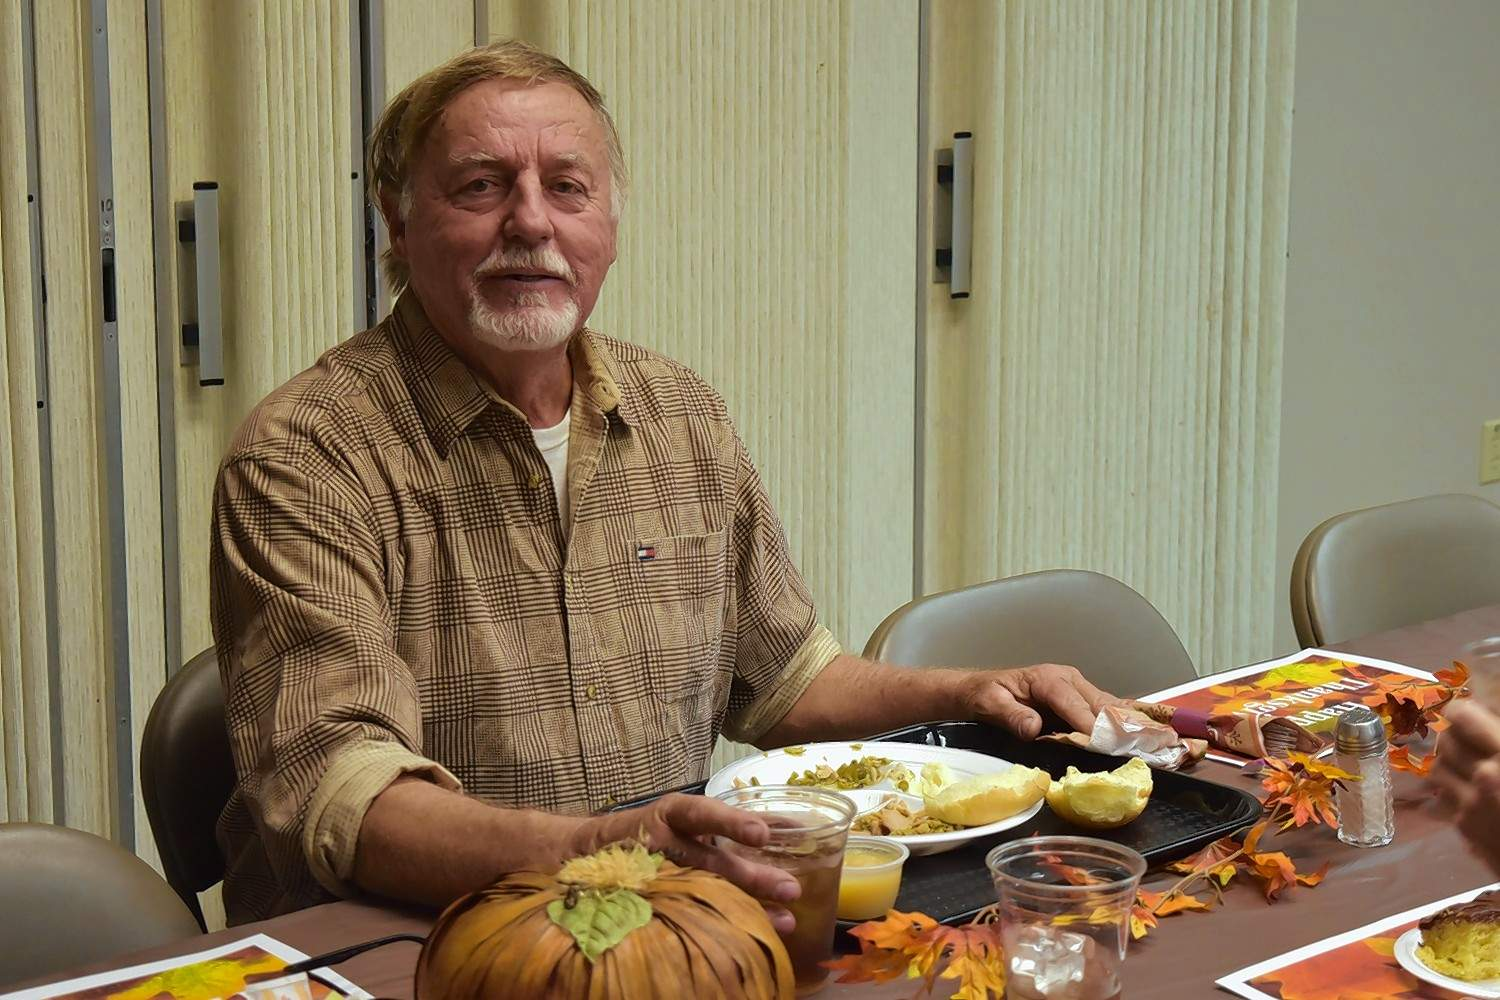 Daren Crabb of Harrisburg said he enjoyed the chance to have dinner at 'His Table' Thursday afternoon.